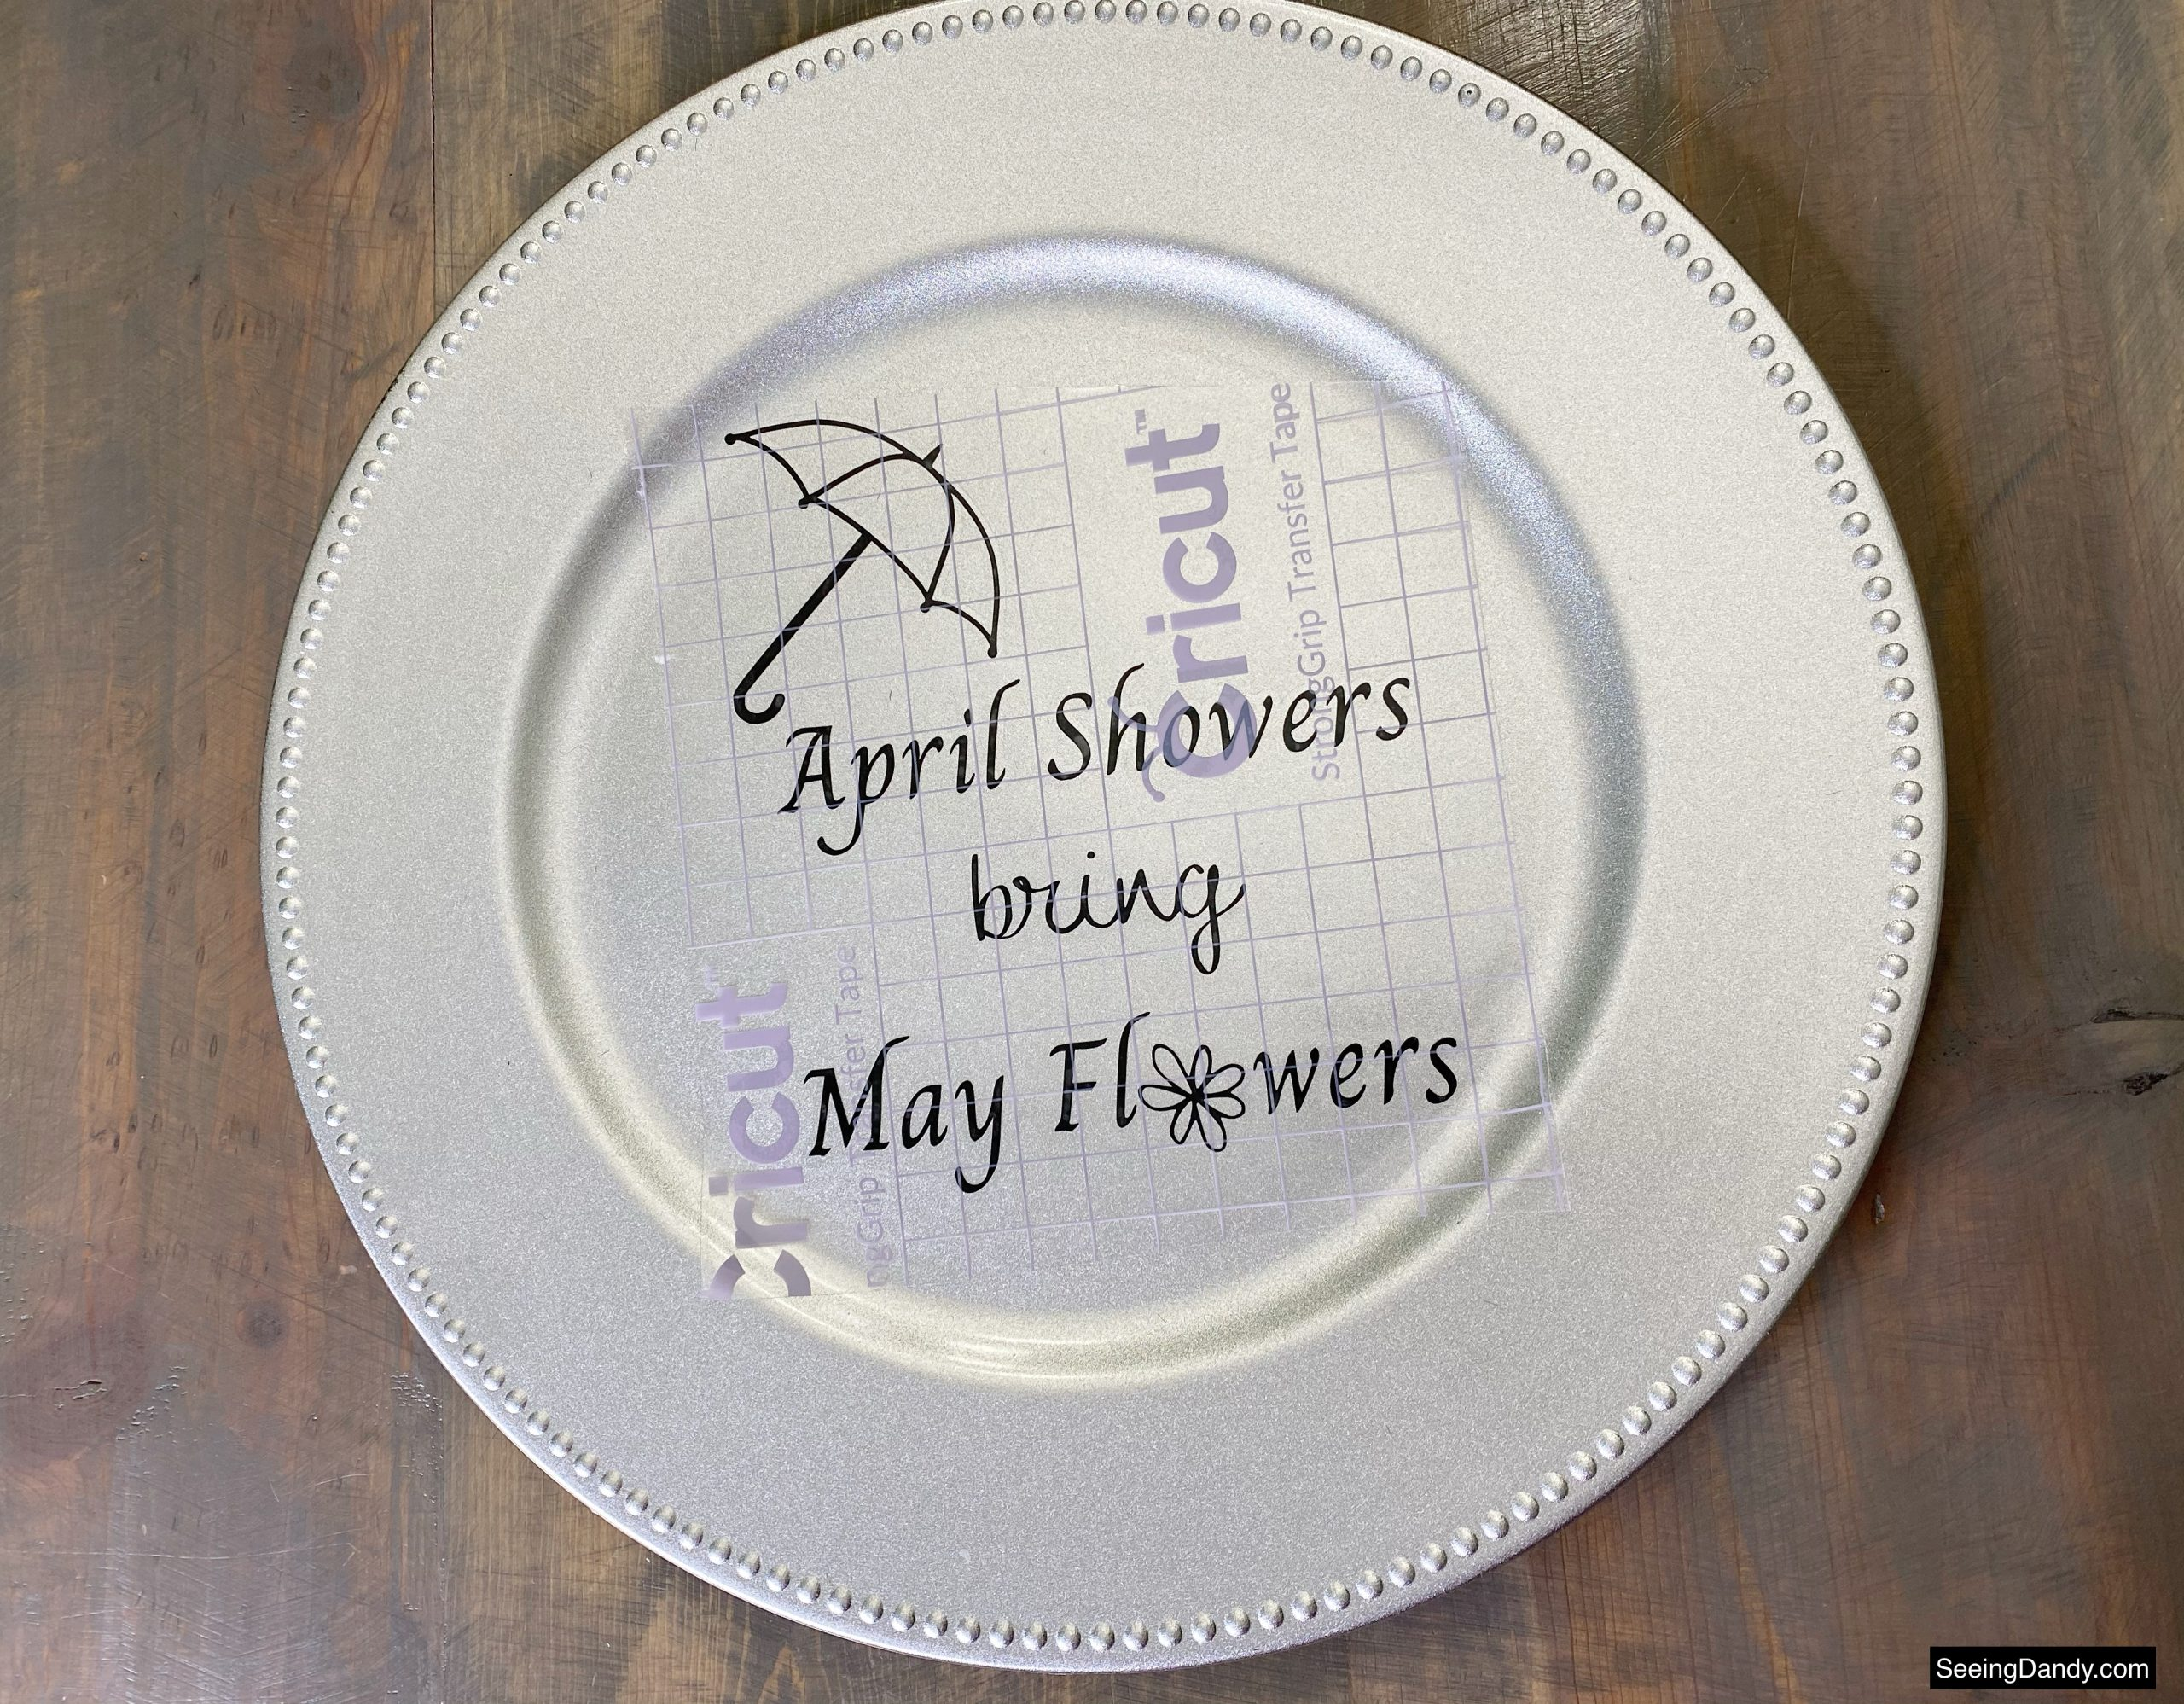 april showers bring may flowers svg file, free svg file, vinyl craft, umbrella svg file, free printables, silver dollar tree plastic charger plate, dollar tree craft ideas, farmhouse table, easy crafts, cricut strong grip transfer tape, vinyl transfer tape